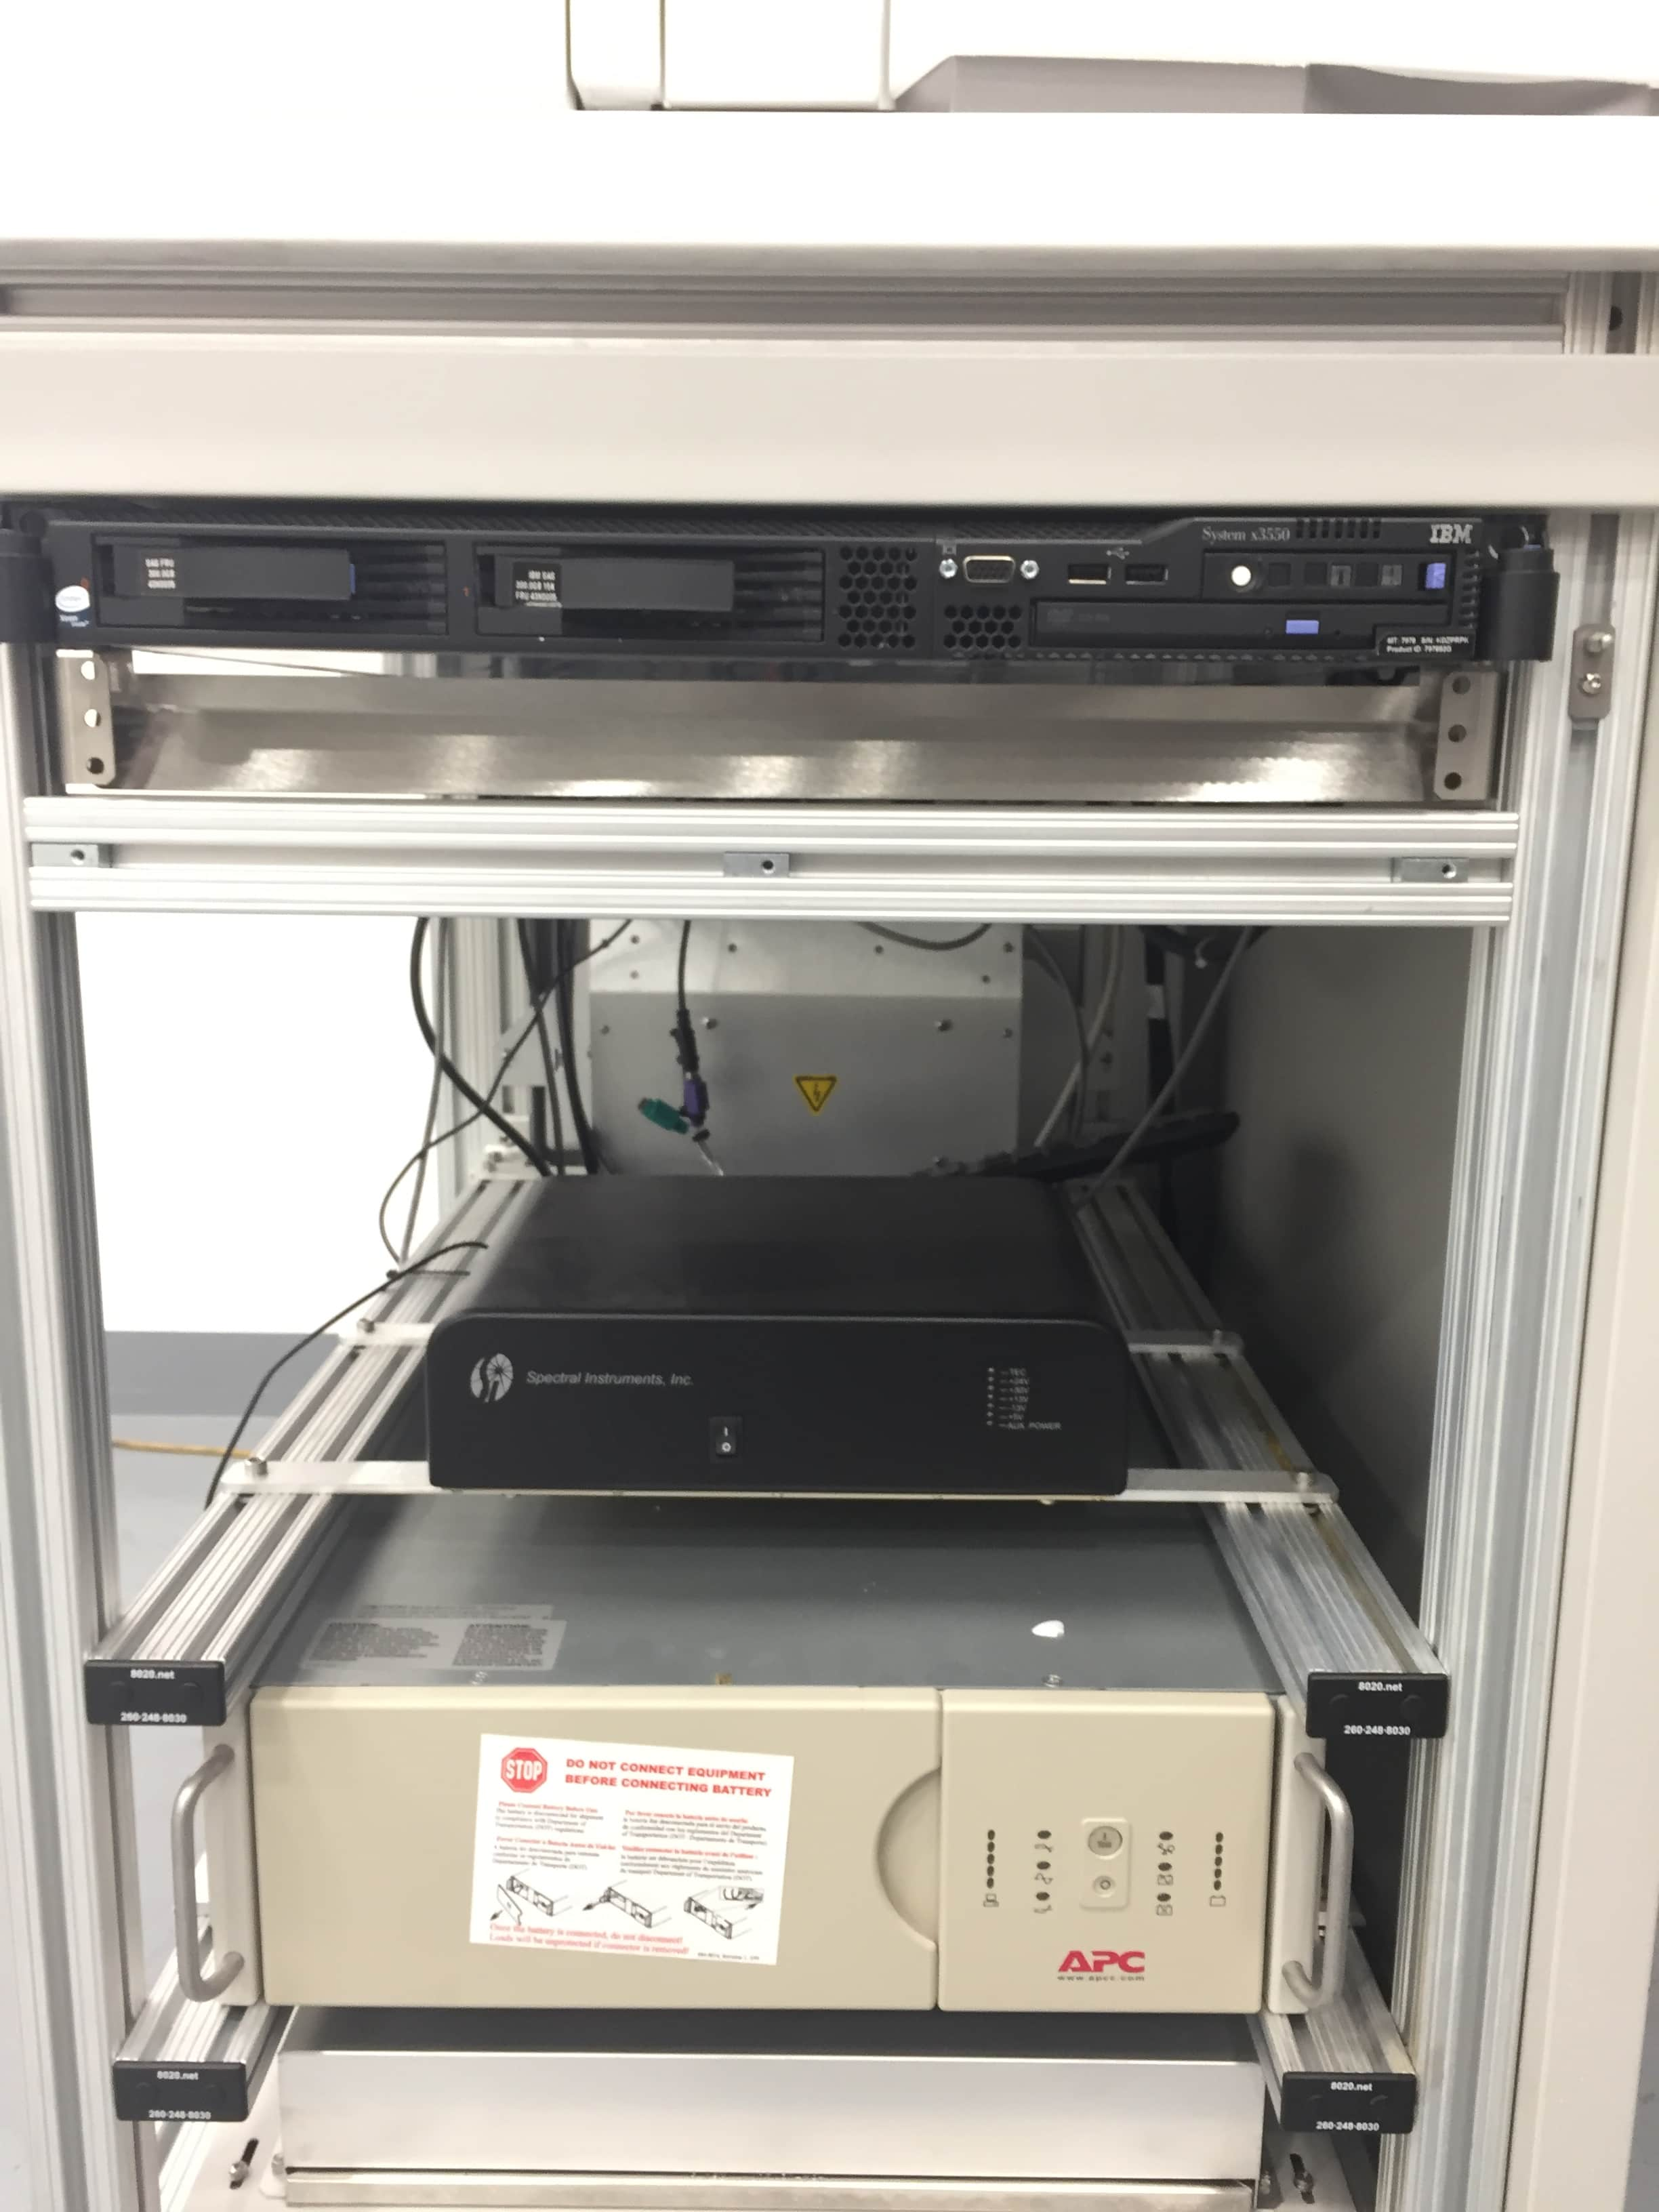 ROCHE 454 SEQUENCING GS FLX+ INSTRUMENT (06372309001)